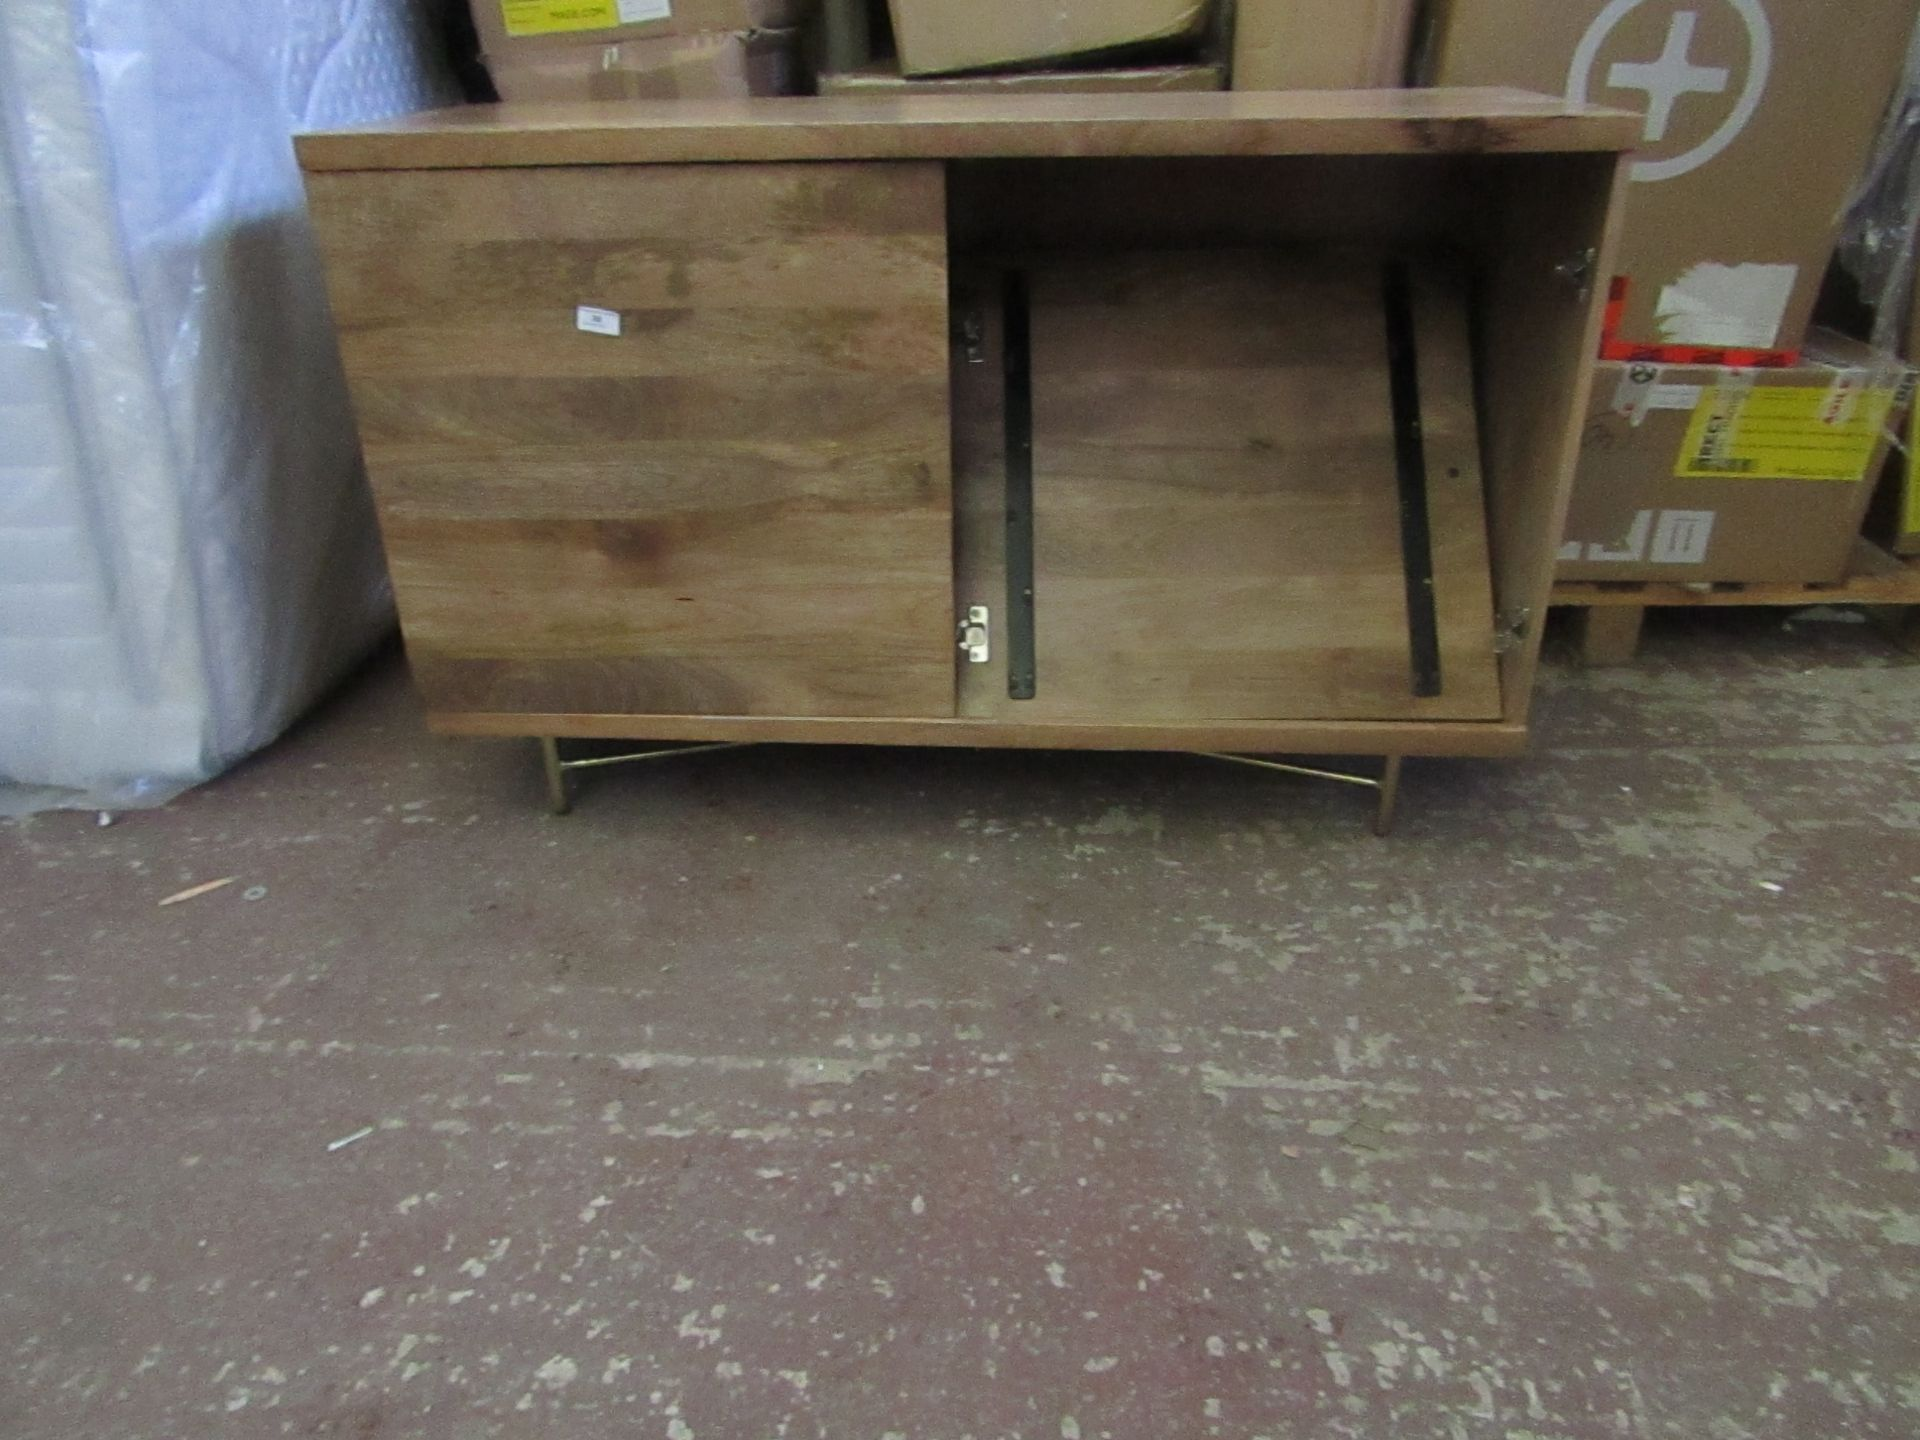 | 1X | SWOON HALLE SIDEBOARD | ONE OF THE HINGES IS DAMAGED AND THERE IS A HOLE IN THE HARDBOARD